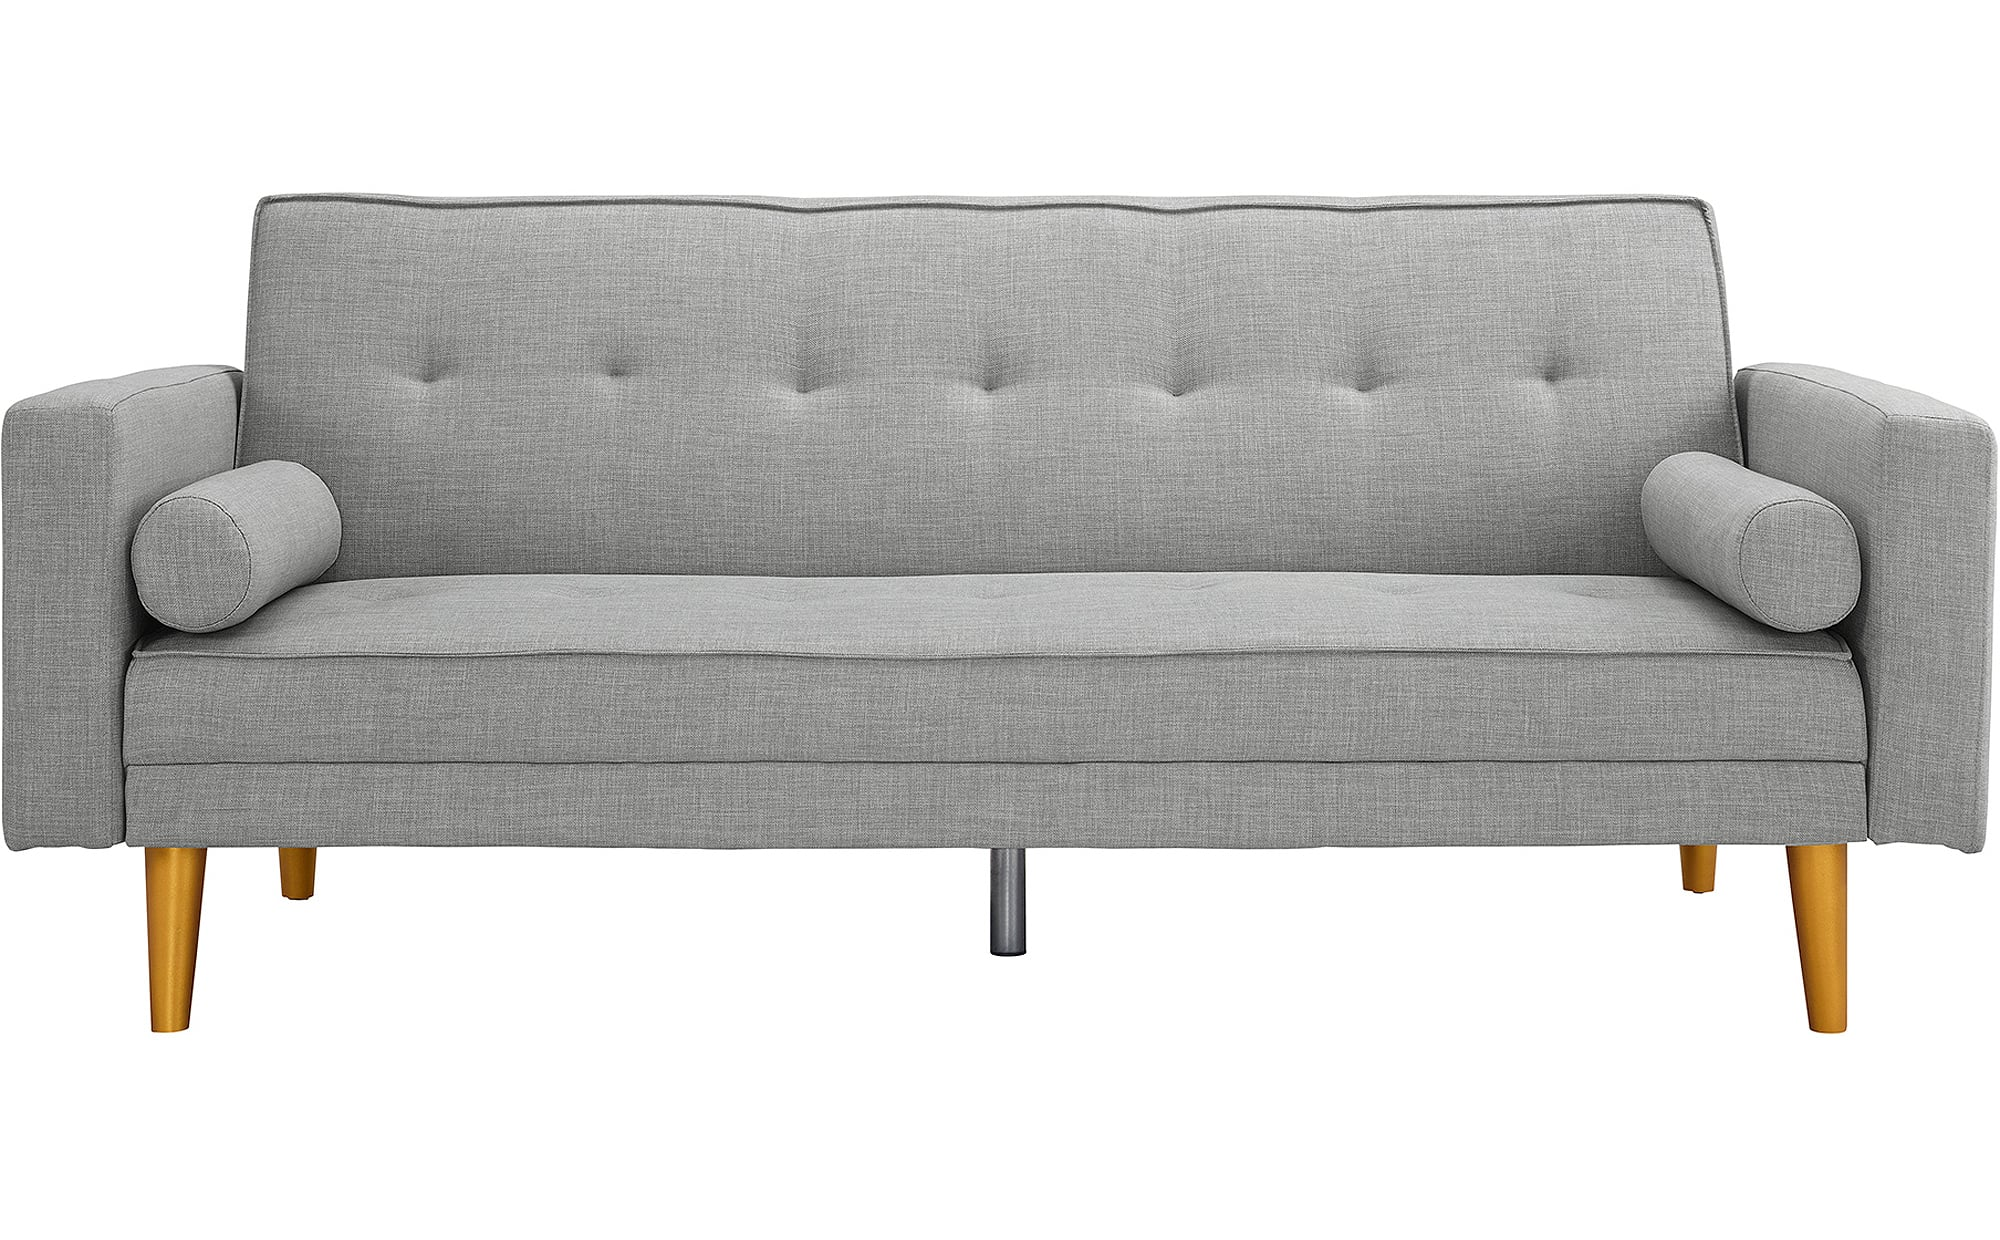 Bestselling Couch on Walmart | POPSUGAR Home